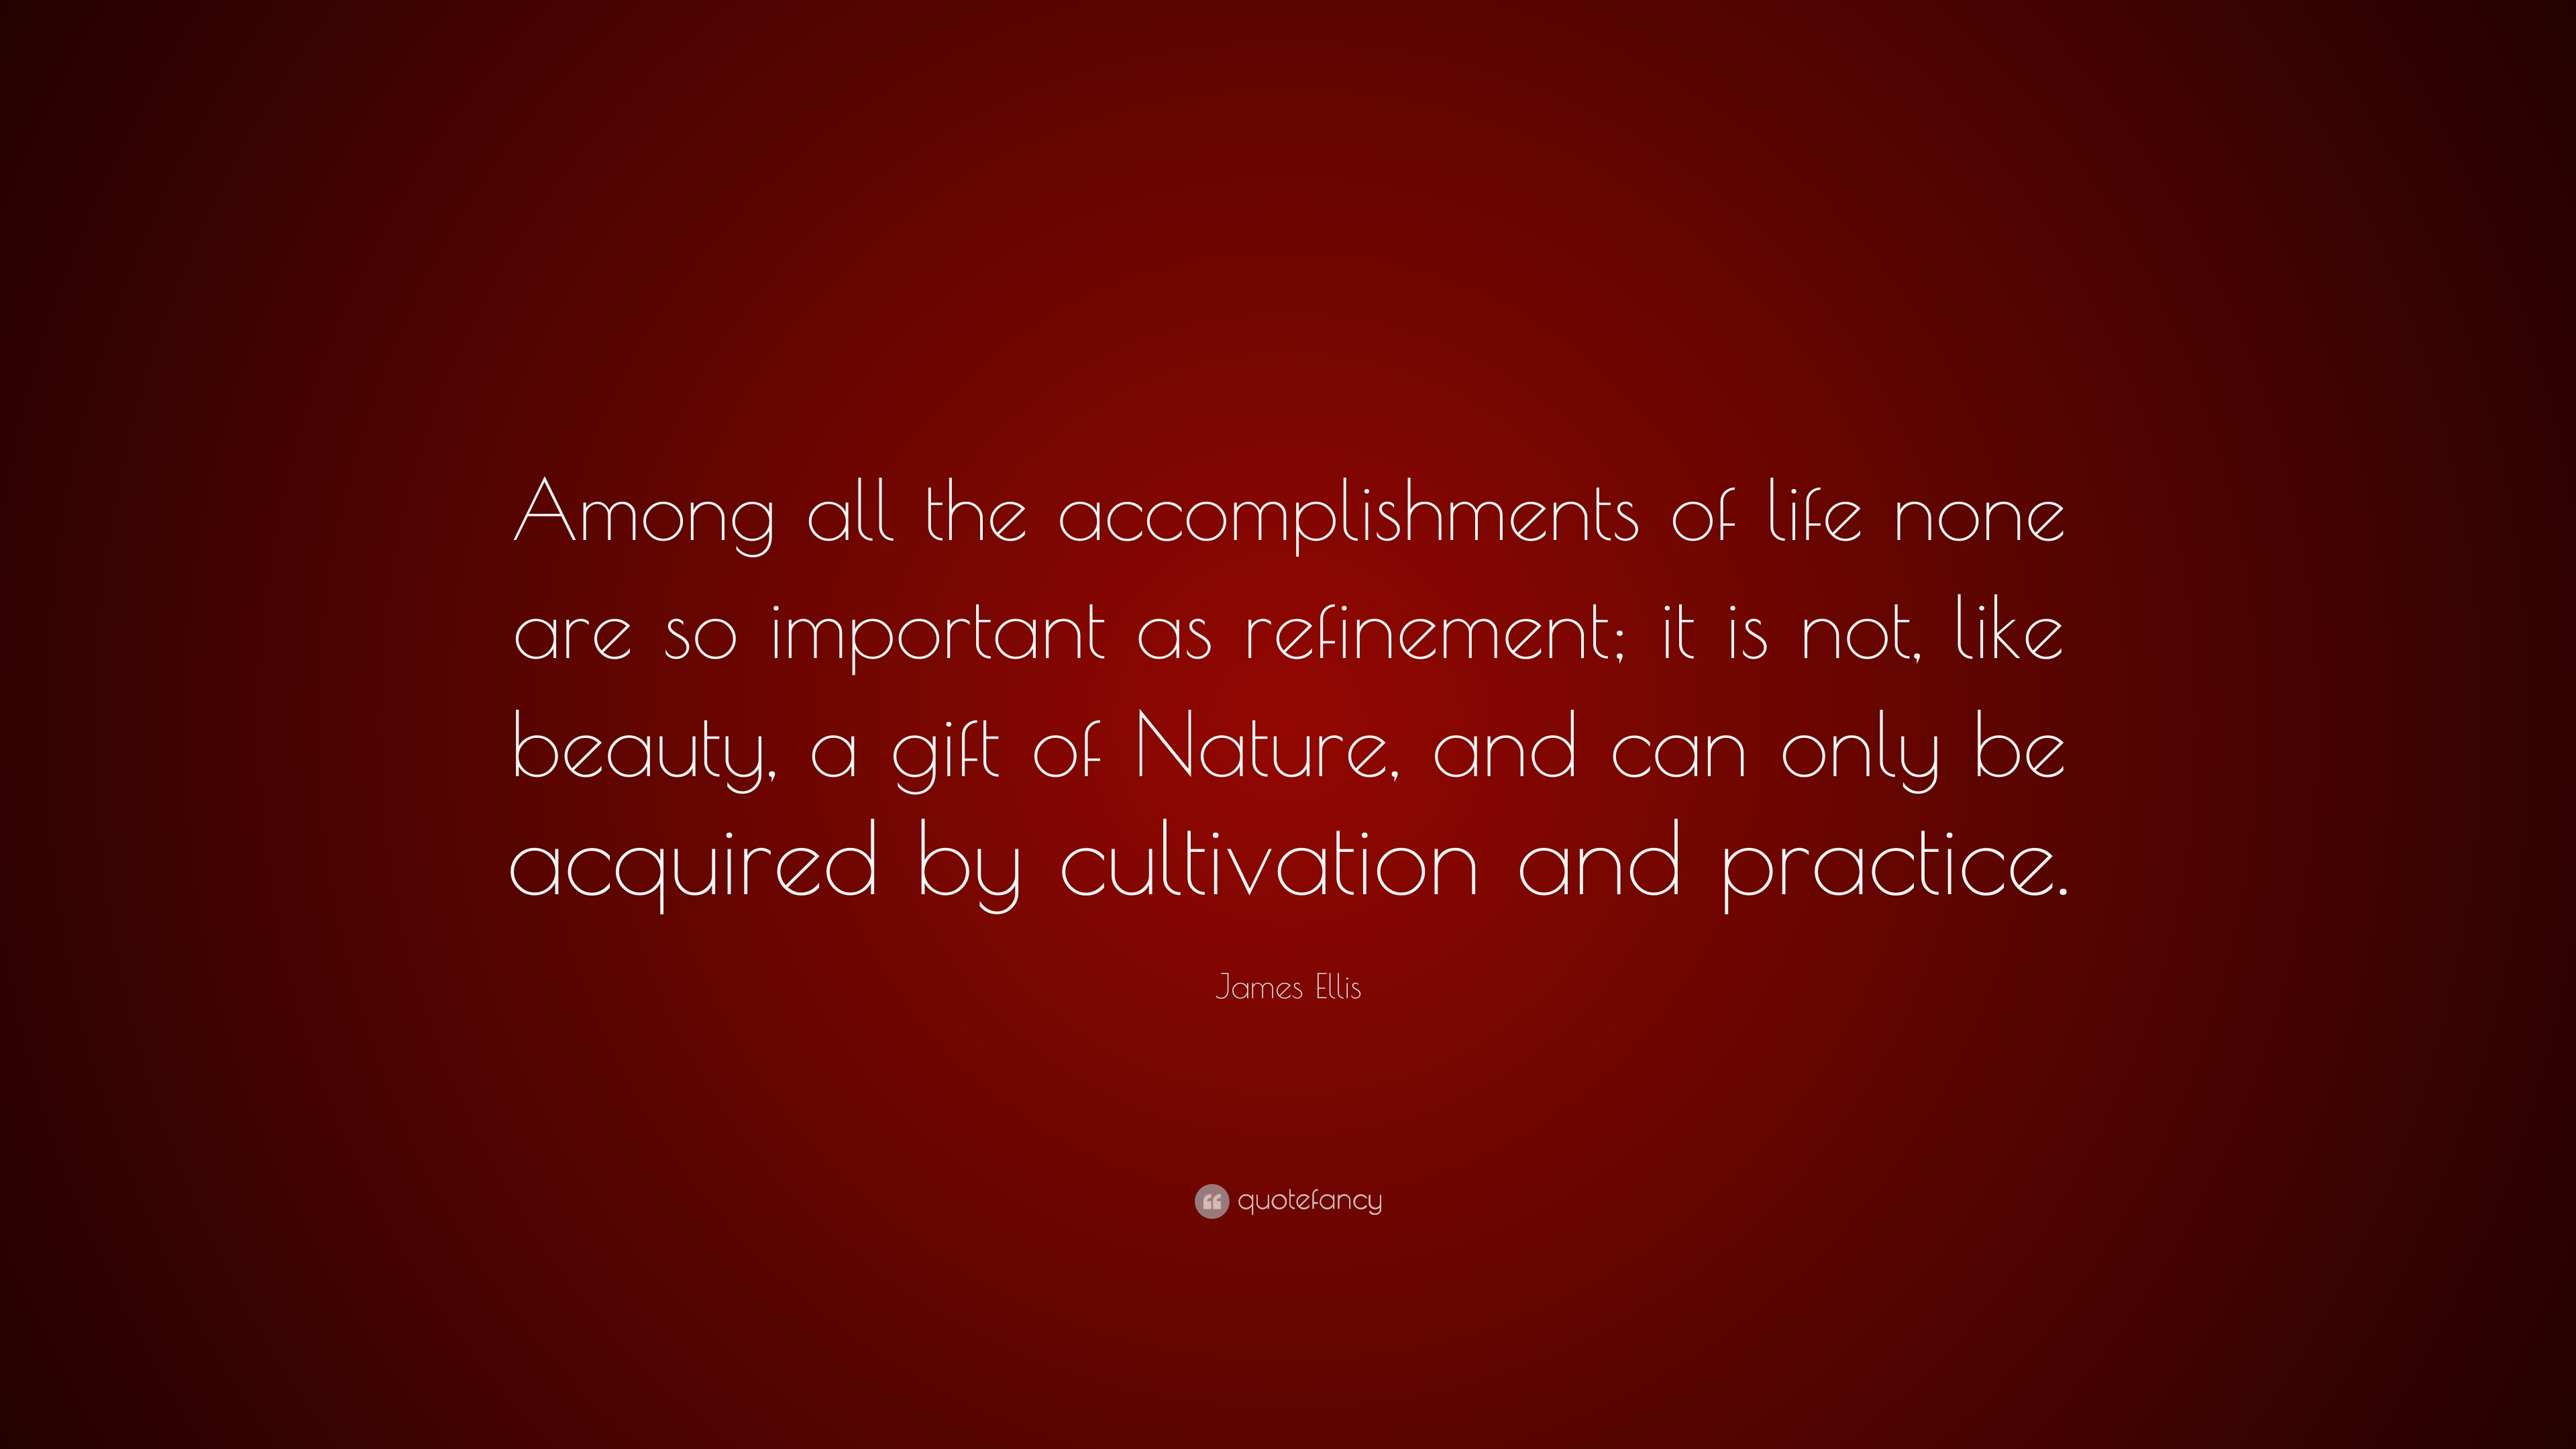 james ellis quotes quotefancy james ellis quote among all the accomplishments of life none are so important as